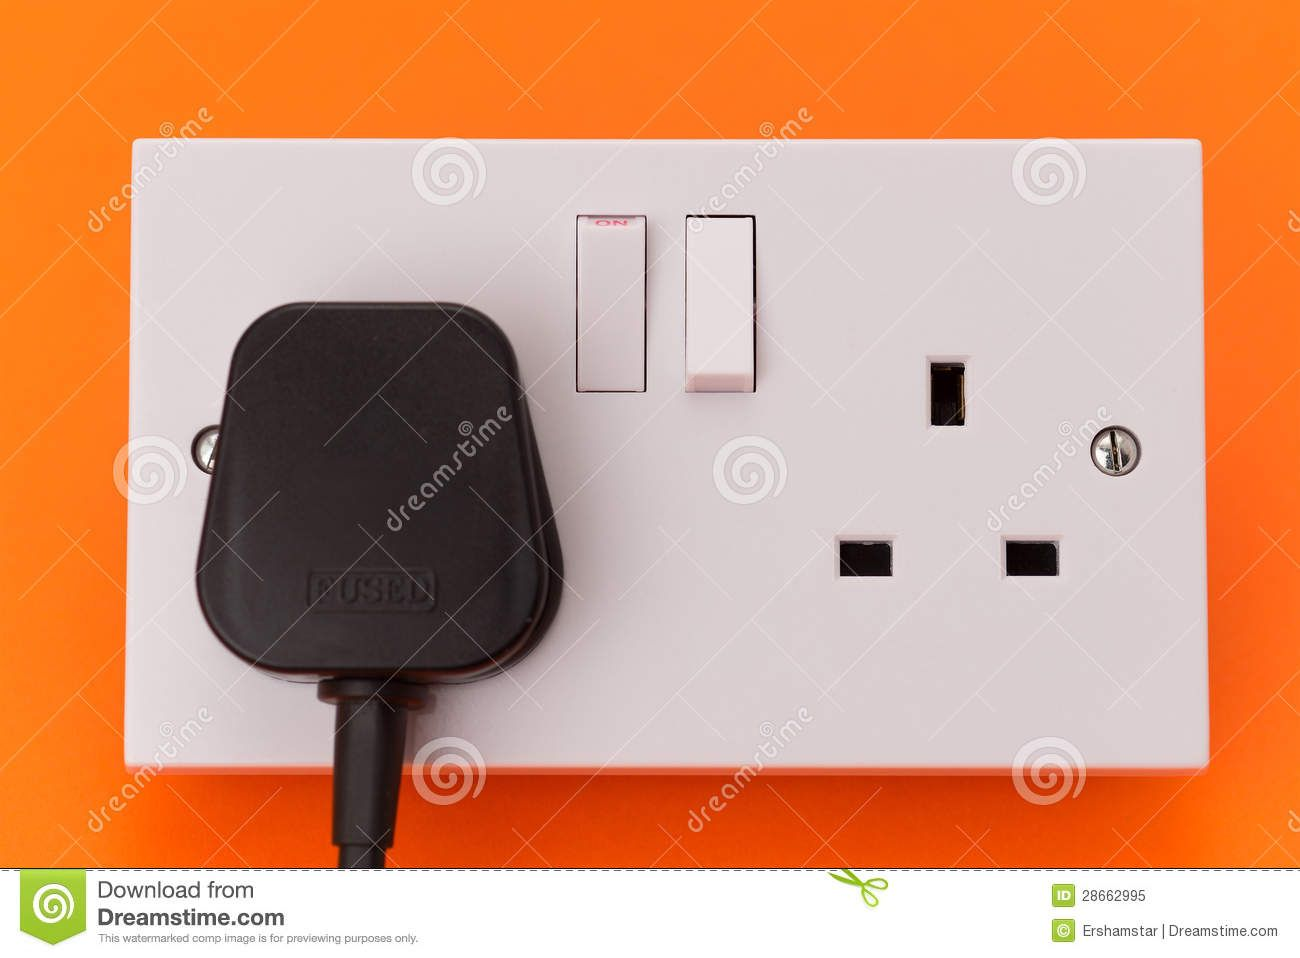 Uk Electrical Wall Socket Outlet And Plug Sockets Plugs Electricity